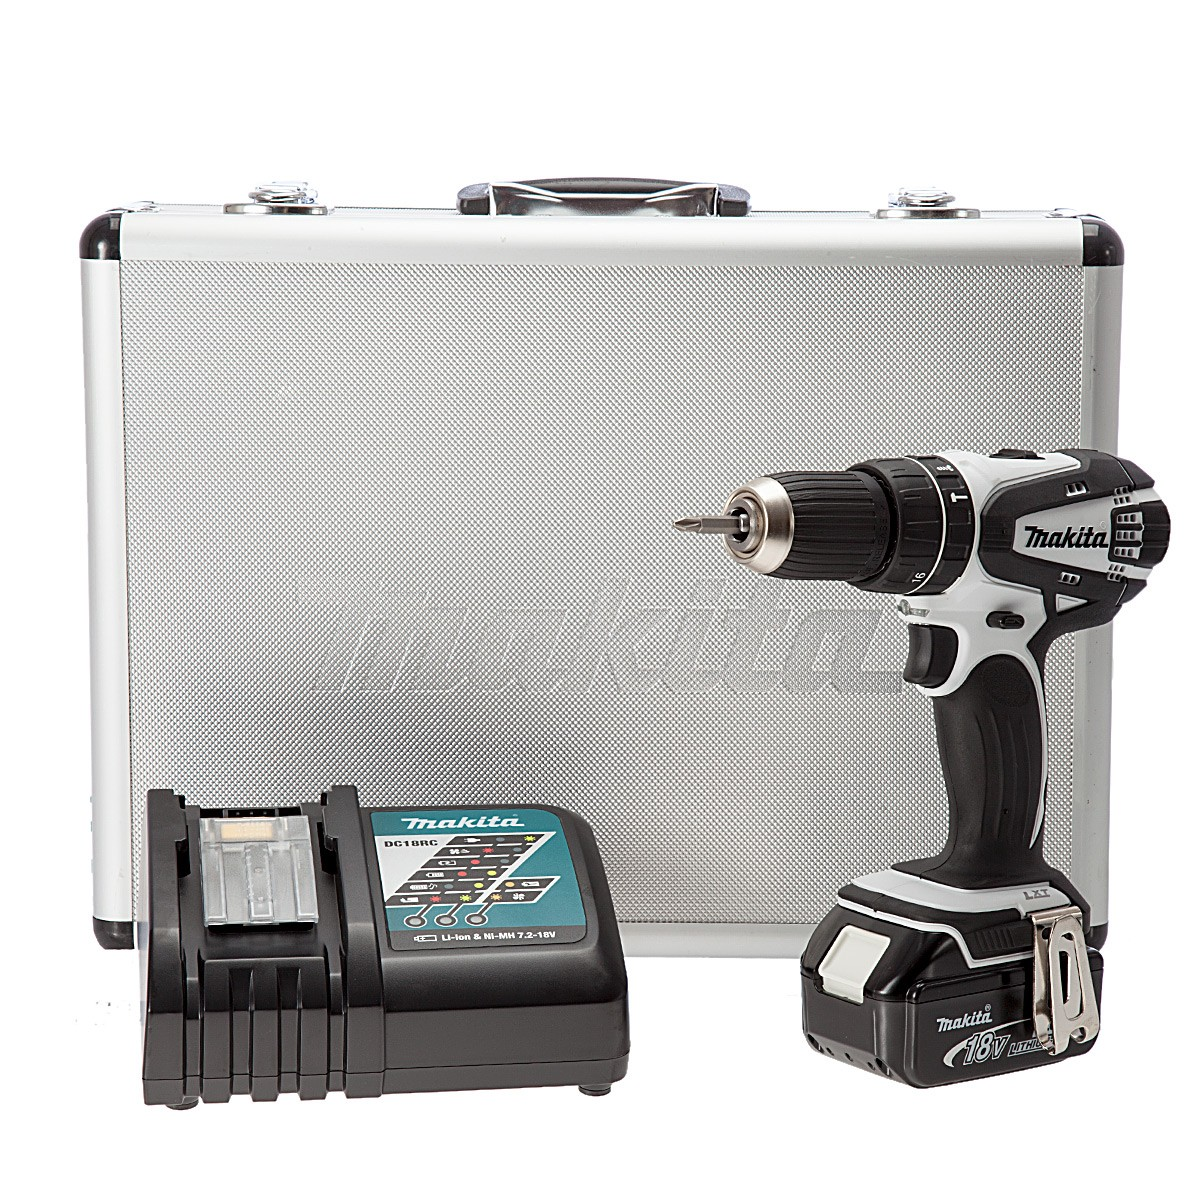 Makita DHP456RMWX 18v White Combi Drill inc 1x 4Ah Batt in Aluminium Case